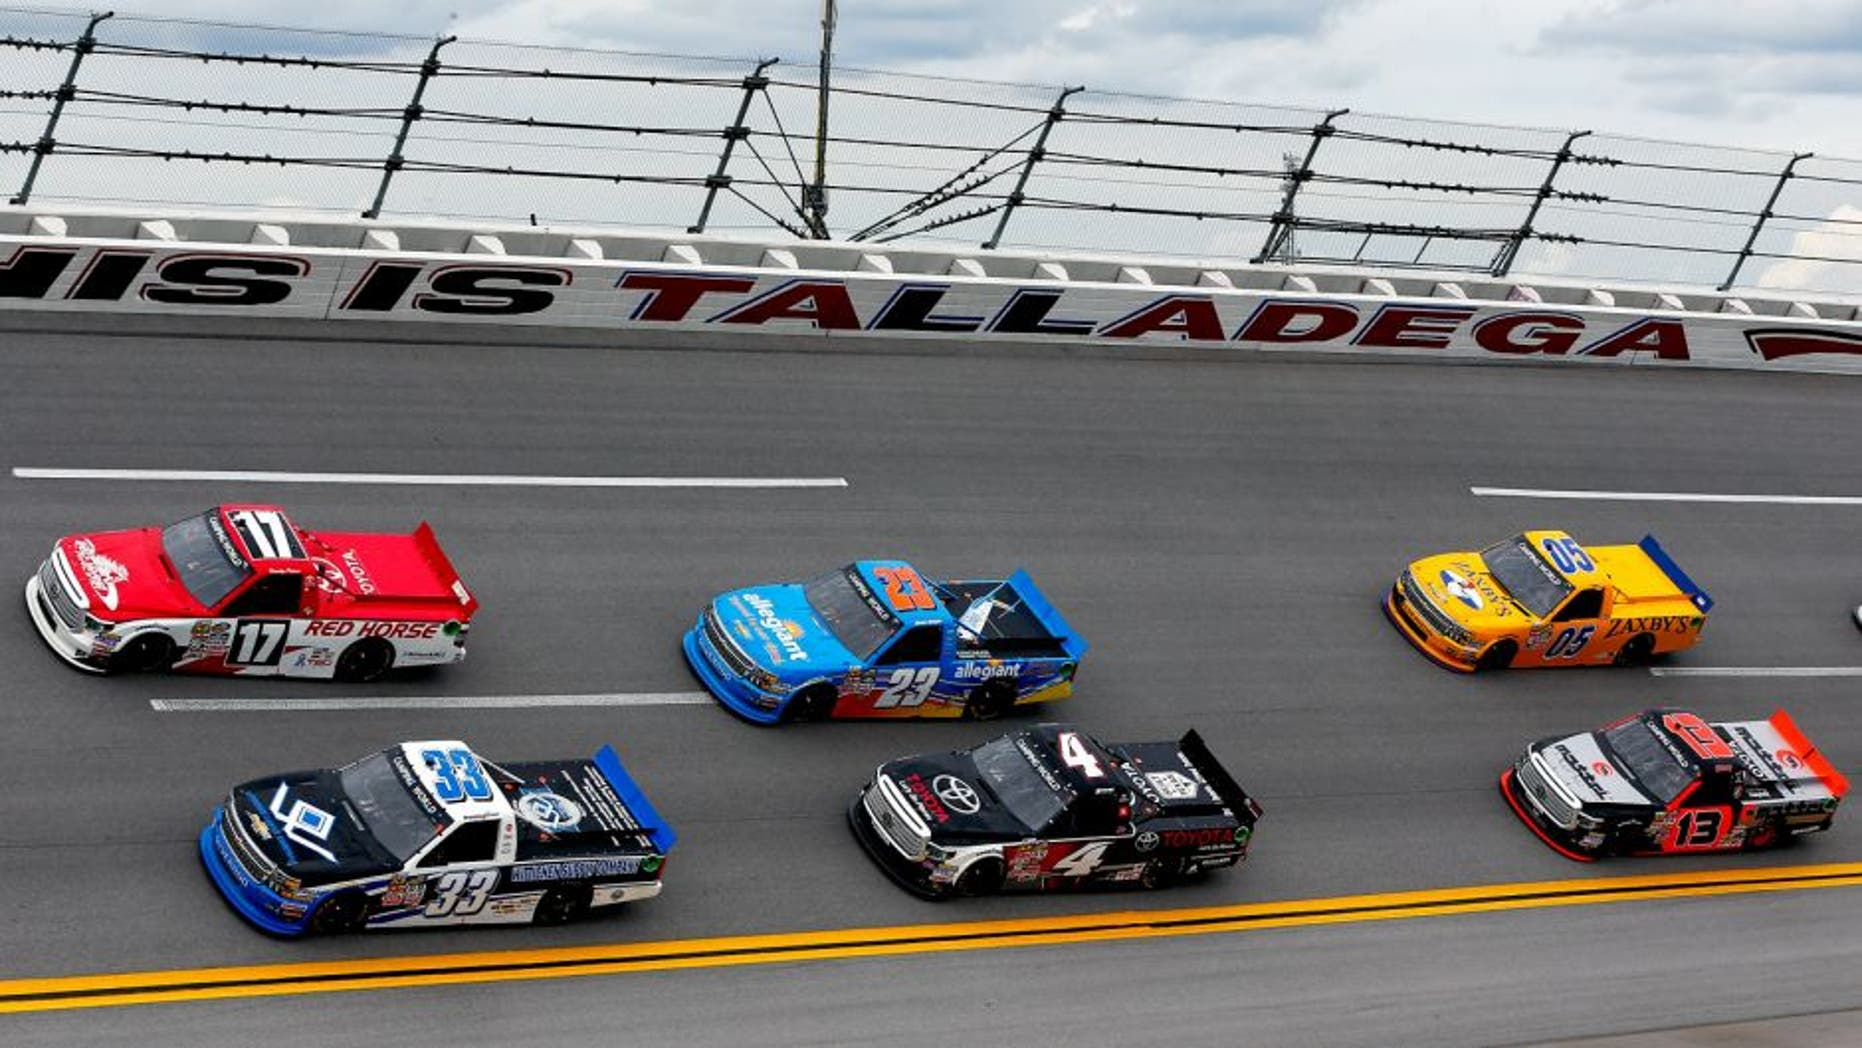 Drivers race during the NASCAR Camping World Truck Series fred's 250 at Talladega Superspeedway on October 24, 2015 in Talladega, Alabama.